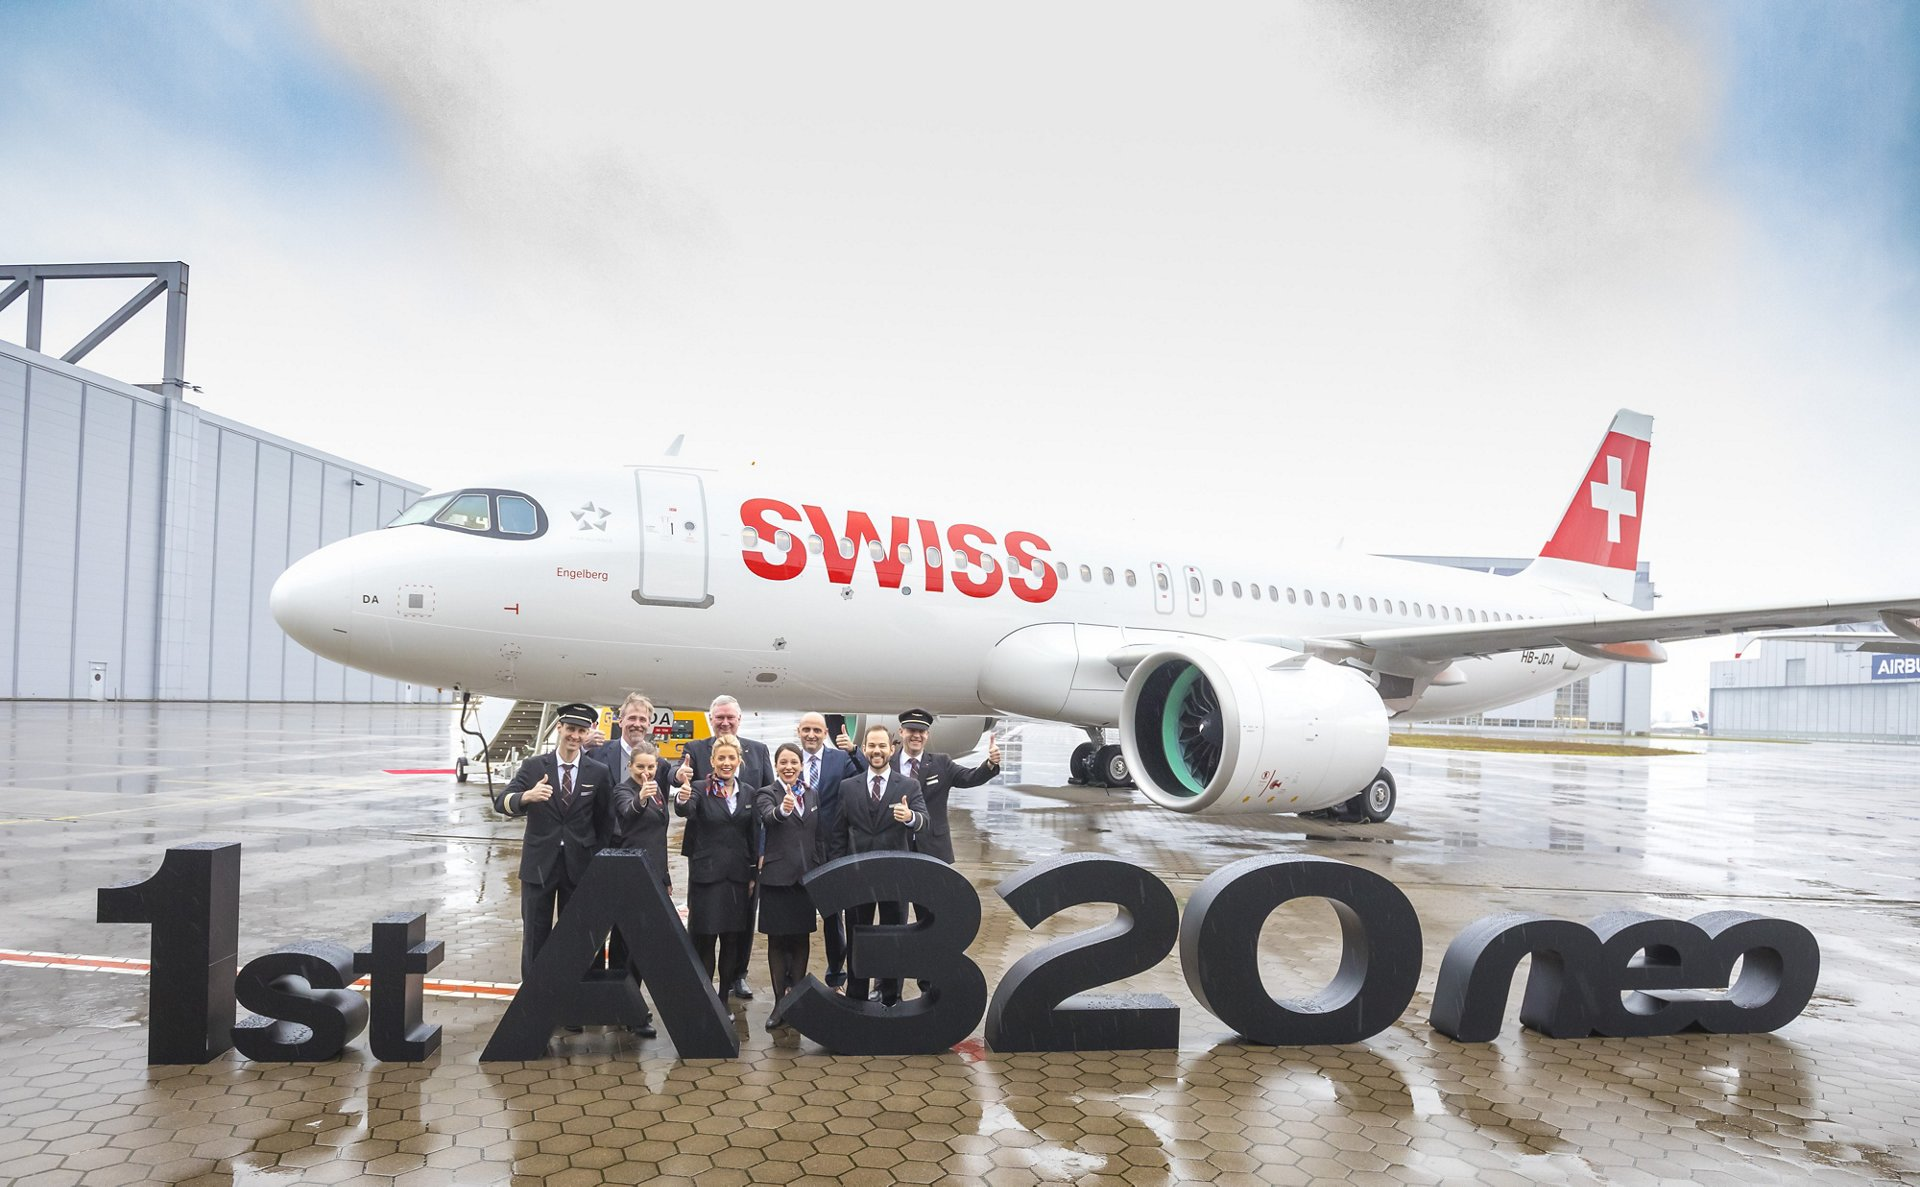 From left to right at the delivery ceremony in Hamburg, Germany: Bruce Hall, Director Pratt & Whitney Airbus Operations; Peter Wojahn, SWISS Chief Technical Officer; and Carlos Alcántara, Head of Acceptance & Delivery A320 Family Final Assembly Line Hamburg, along with SWISS crew members